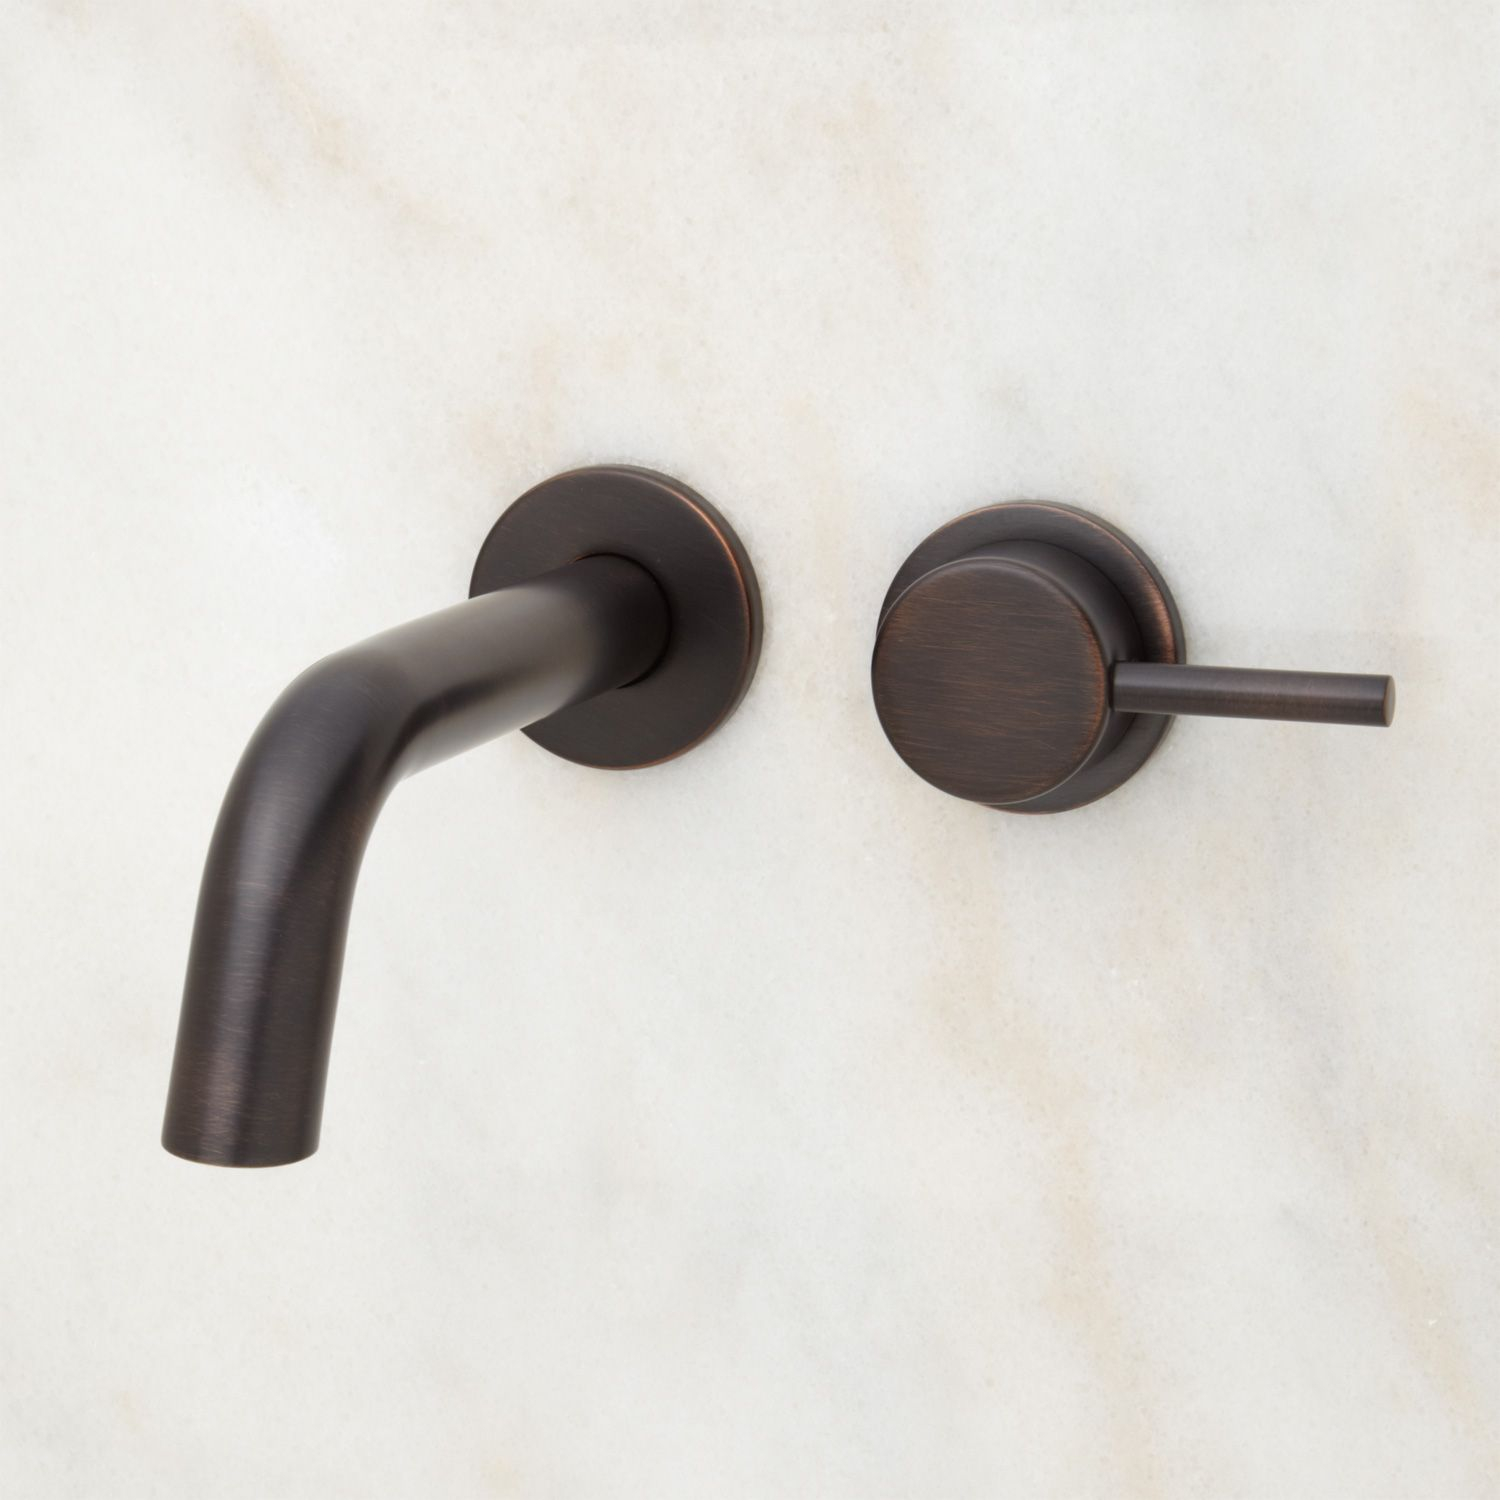 Rotunda Wall-Mount Bathroom Faucet   Vessel faucets, Faucet and ...